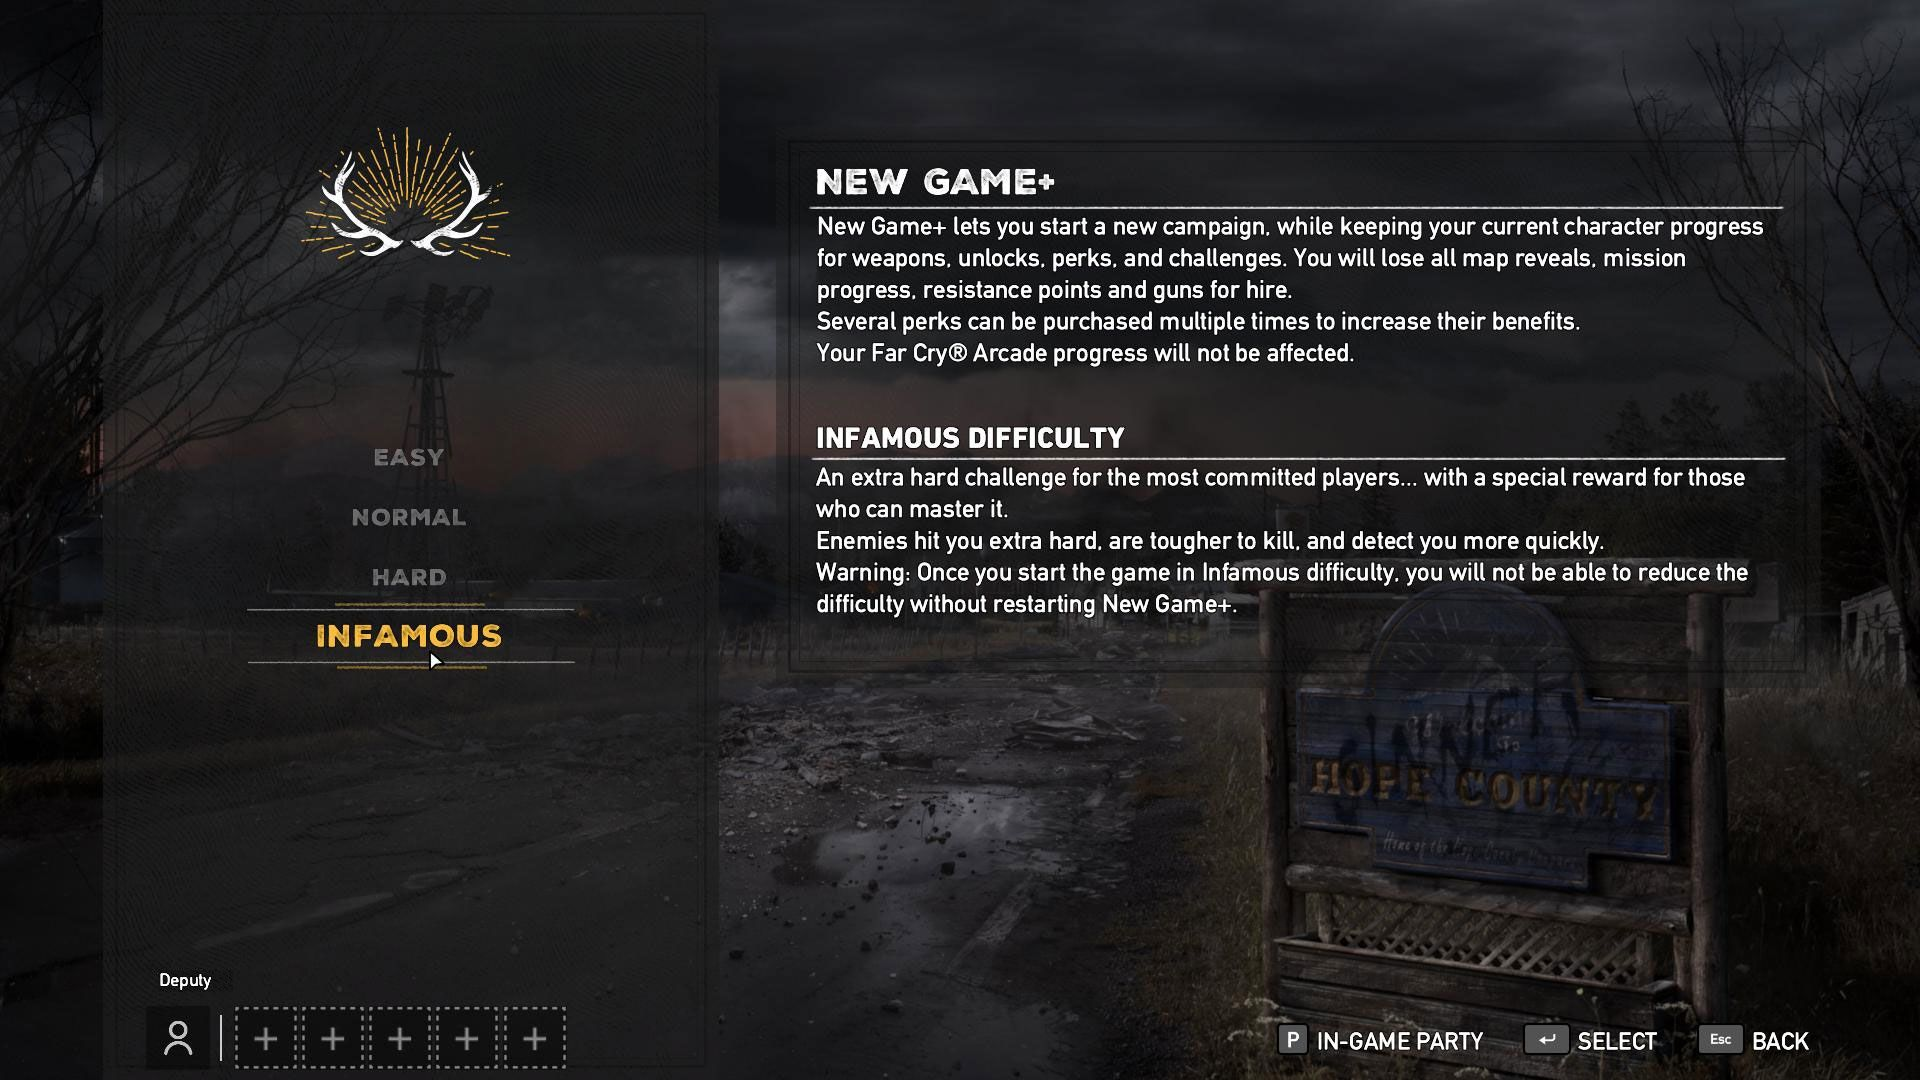 far cry 5 update title 10 patch notes new game mode